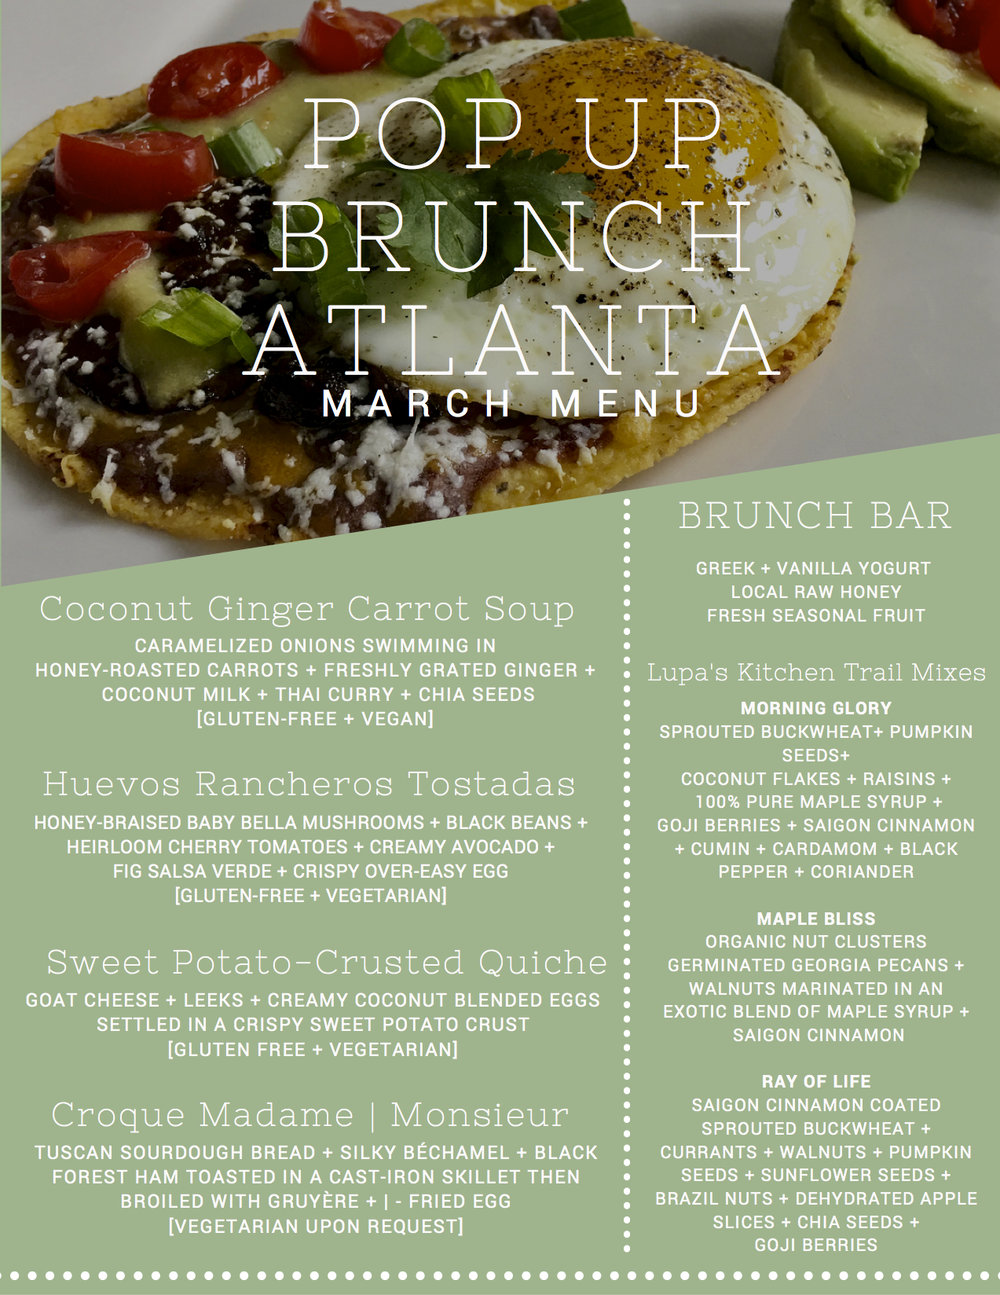 March Menu #PopUpBrunchAtlanta.jpg